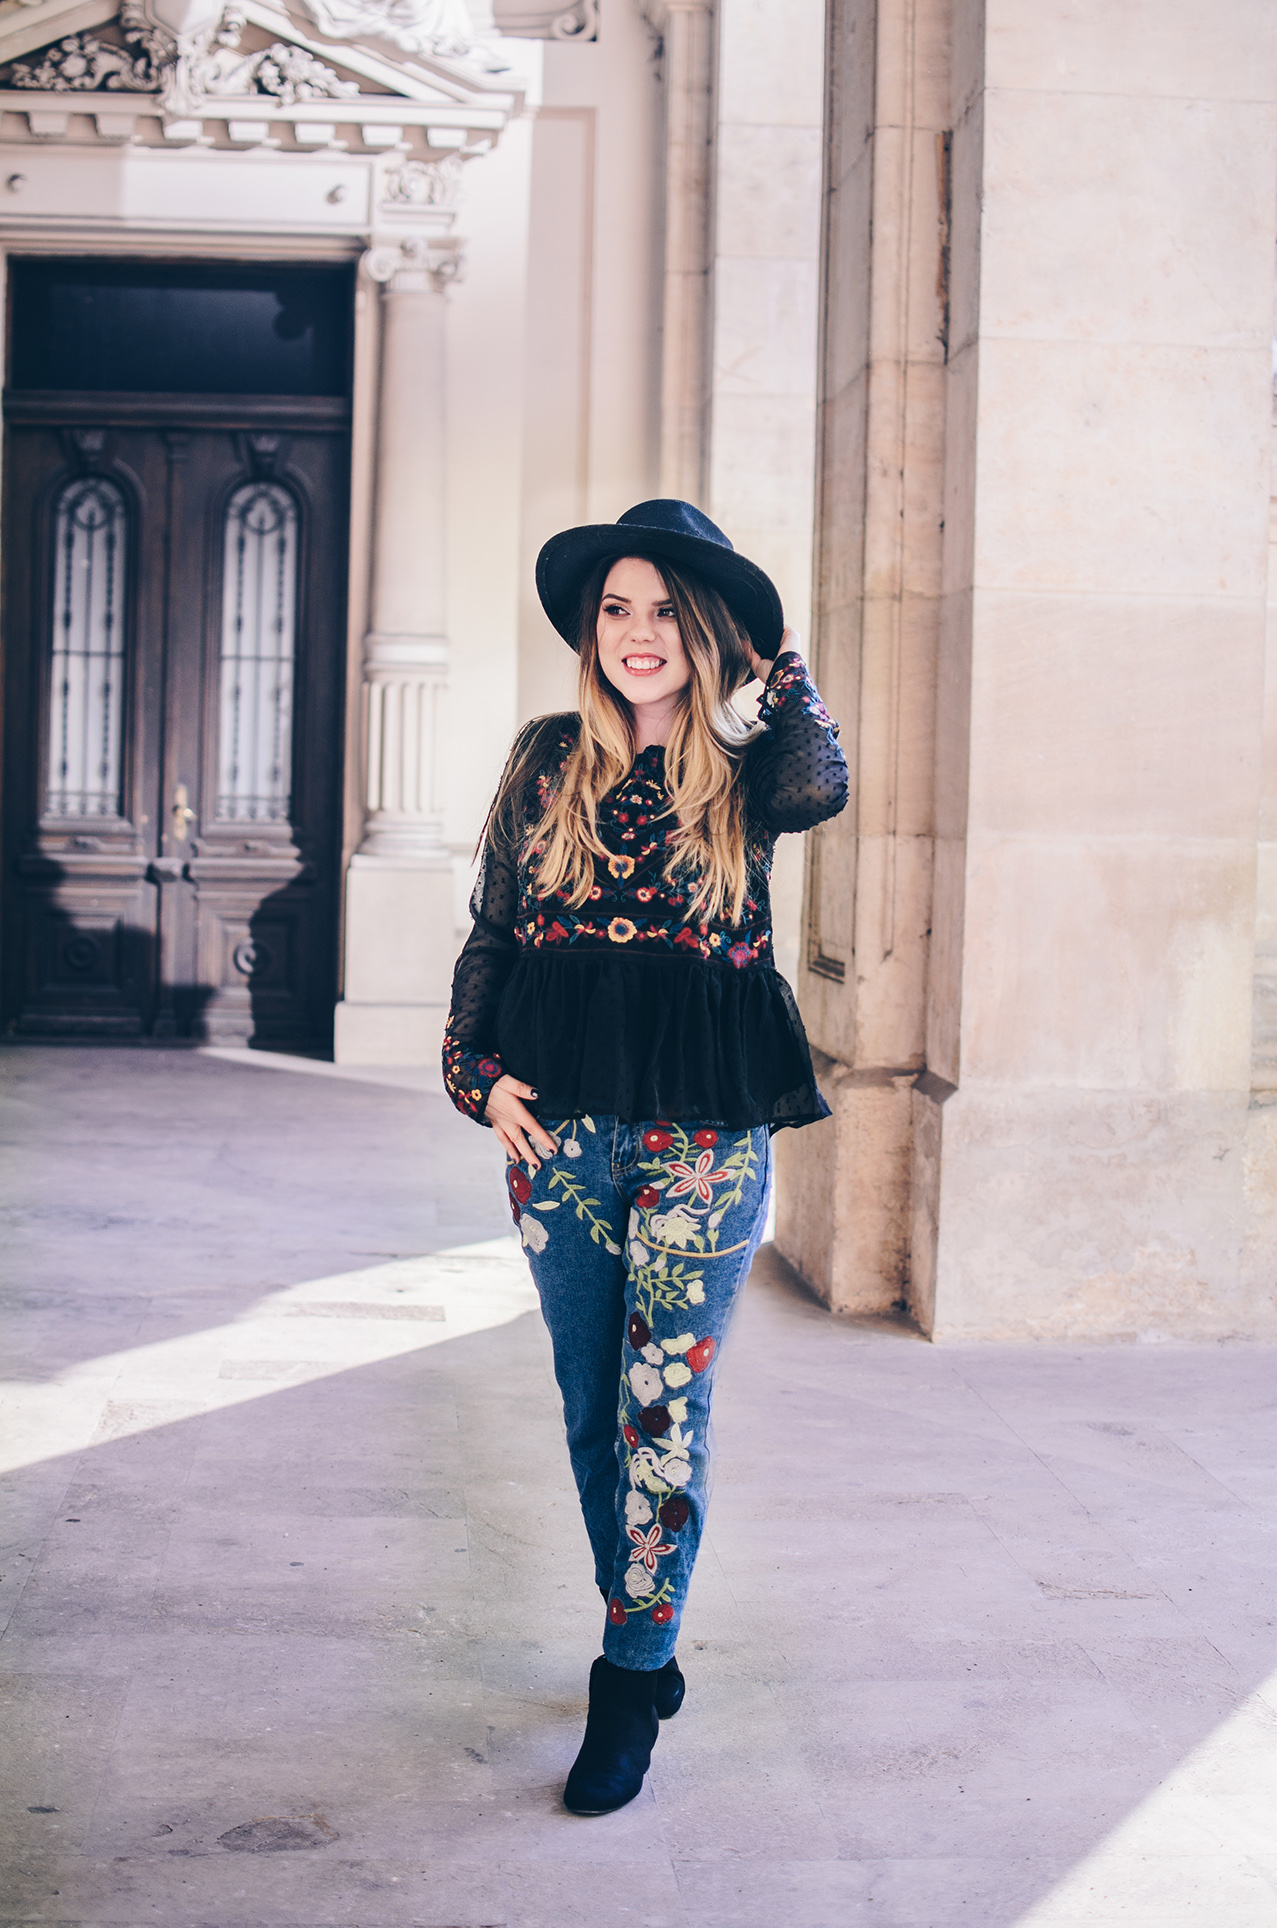 zaful embroidered jeans and blouse anotherside of me blog